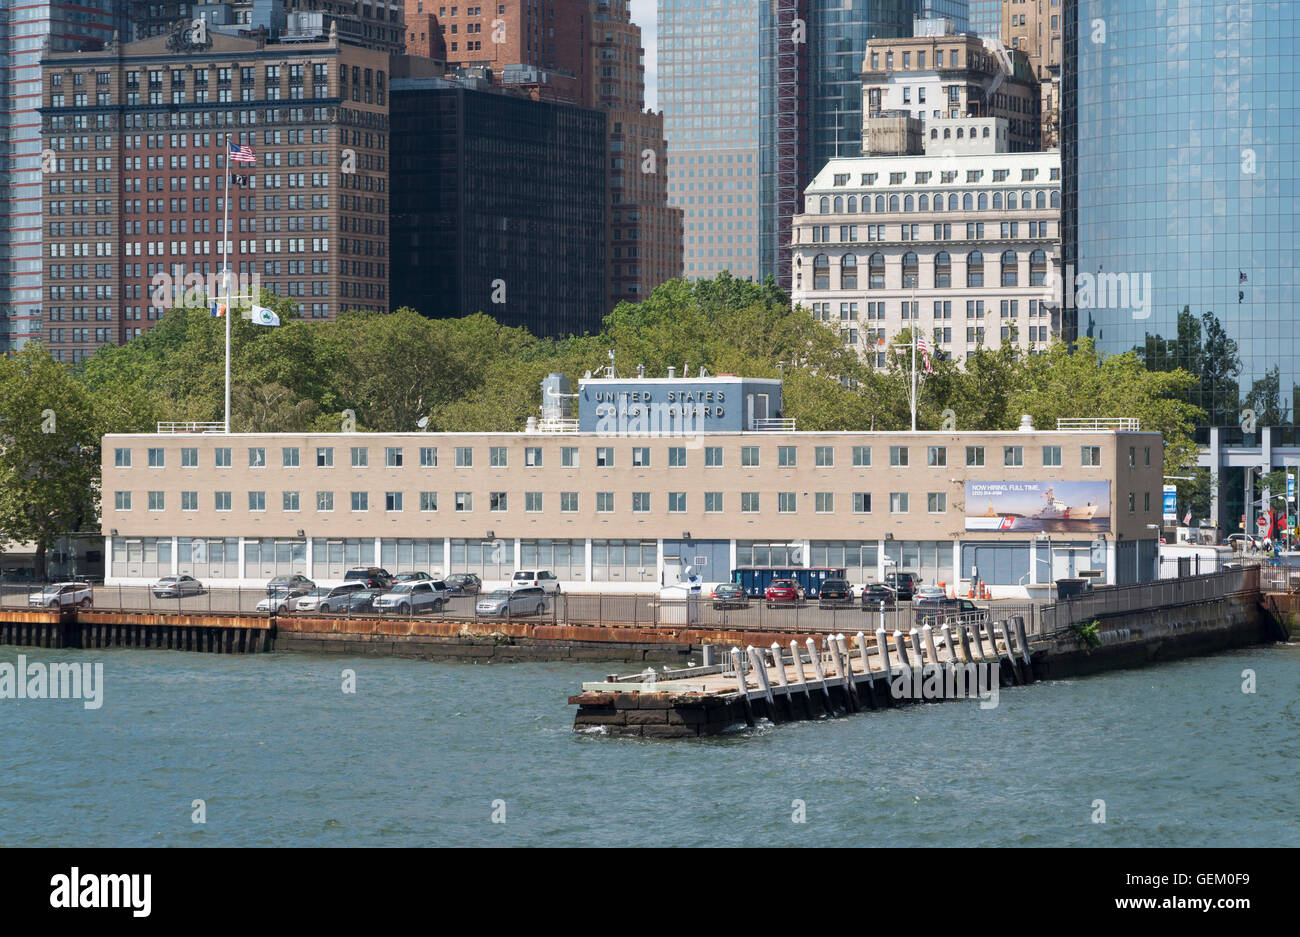 United States Coast Guard building, New York, on the Hudson River - Stock Image